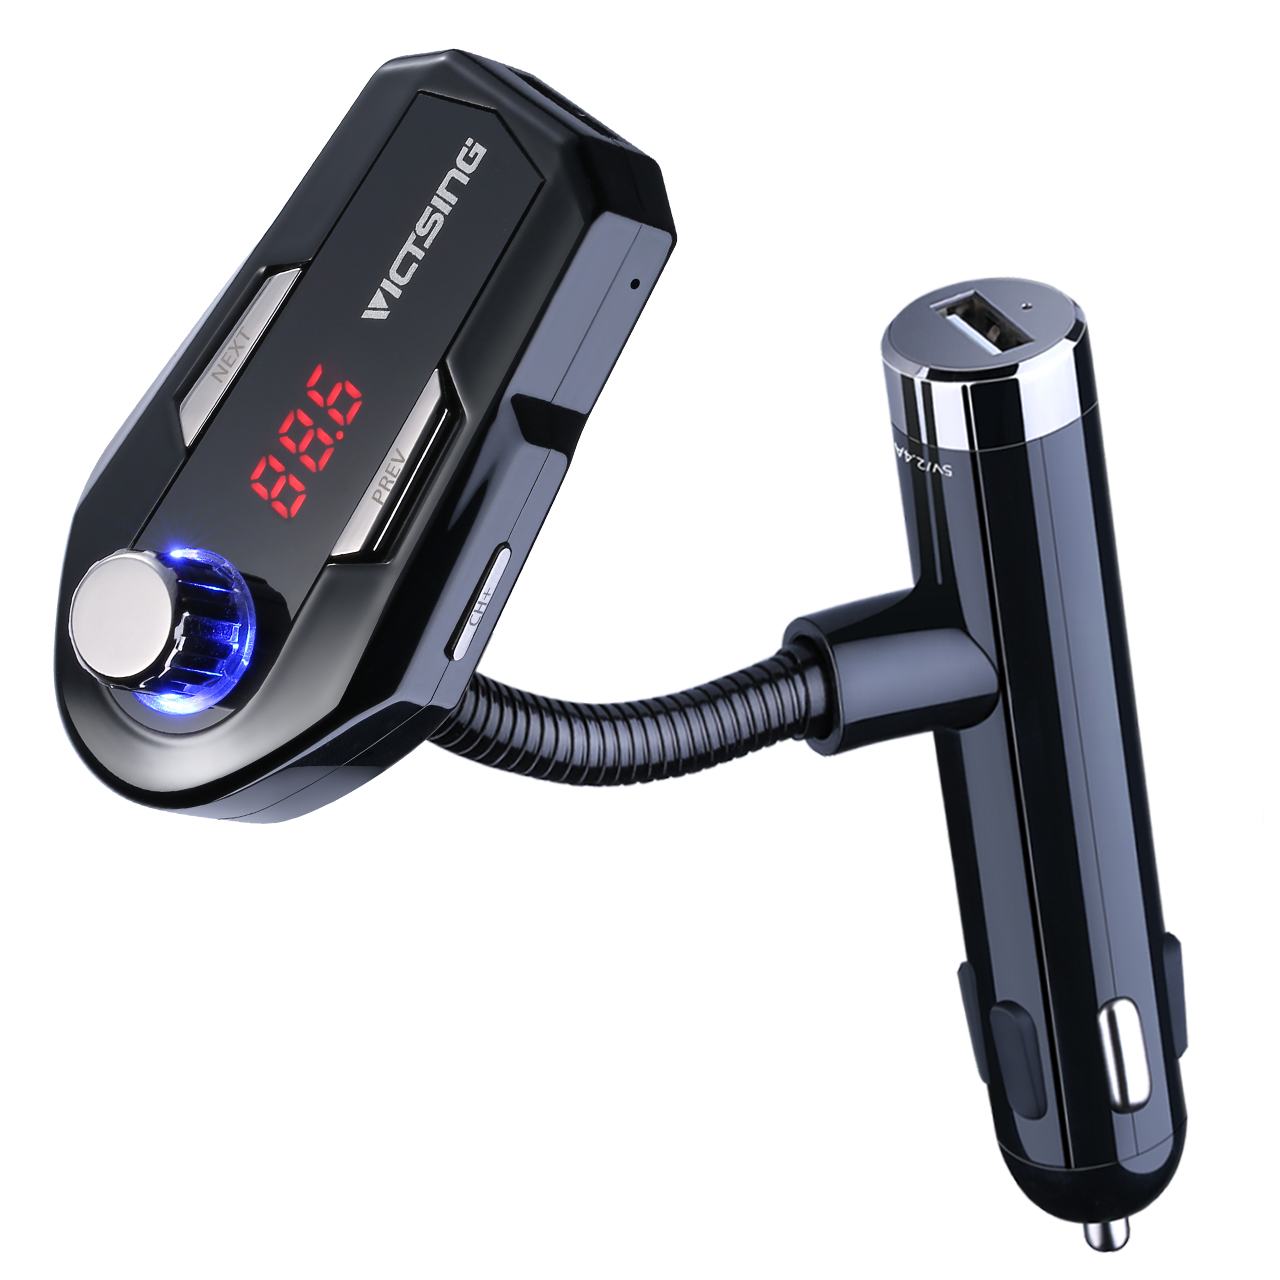 VicTsing Universal Bluetooth Wireless FM Transmitter & Car Charger with 2 USB Type A Charging Port, Hand-free Car Kit with Hands-Free Calling, With LCD Digital Screen& 3.5mm Audio Port